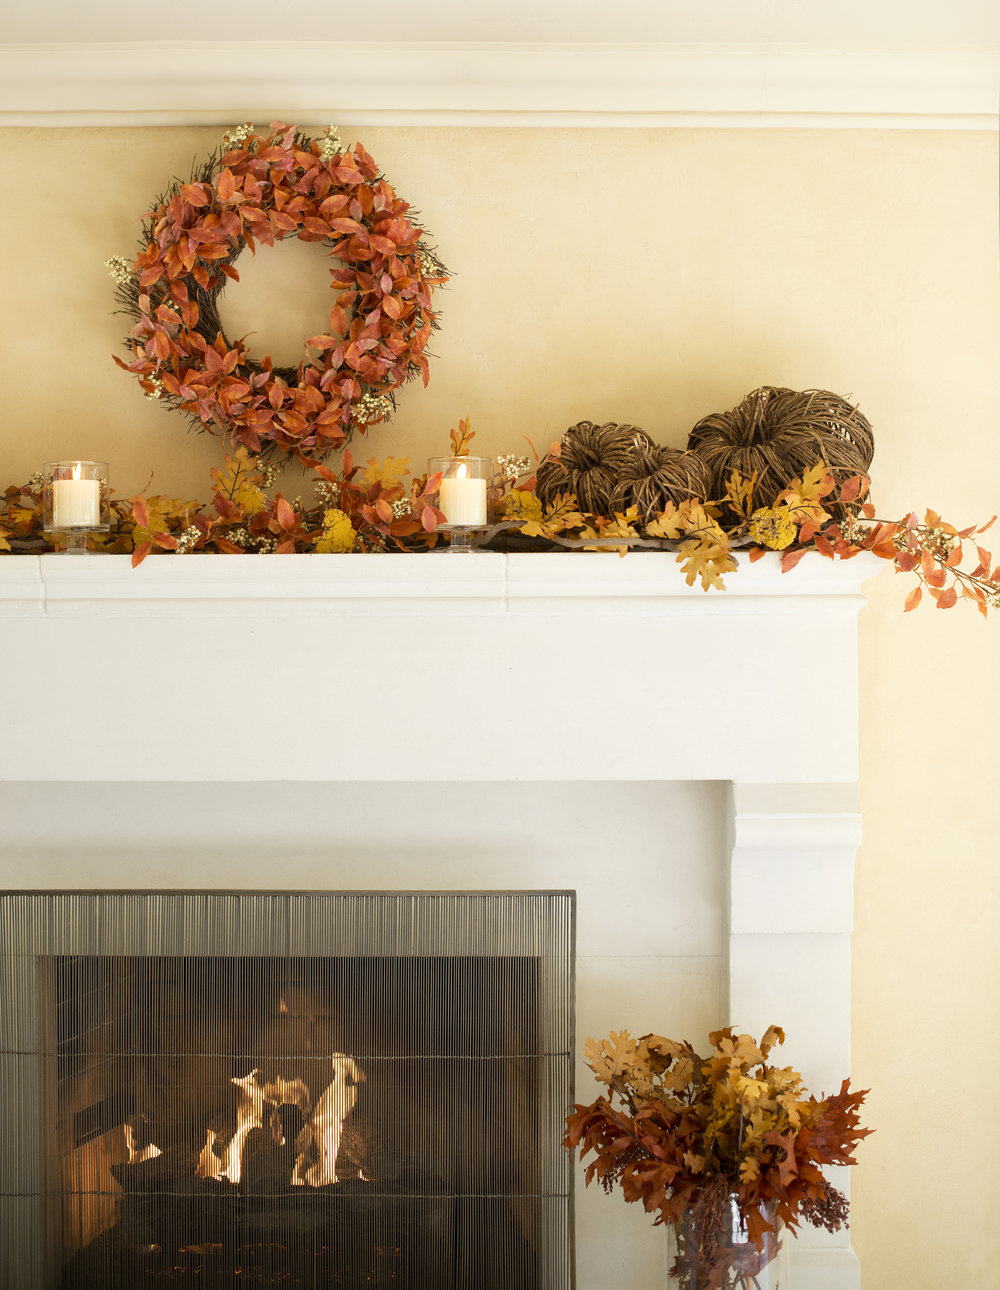 My Splendid Living partnered with Crate & Barrel for this Rustic Fall Fireplace inspiration! #cratestyle #fallfireplace